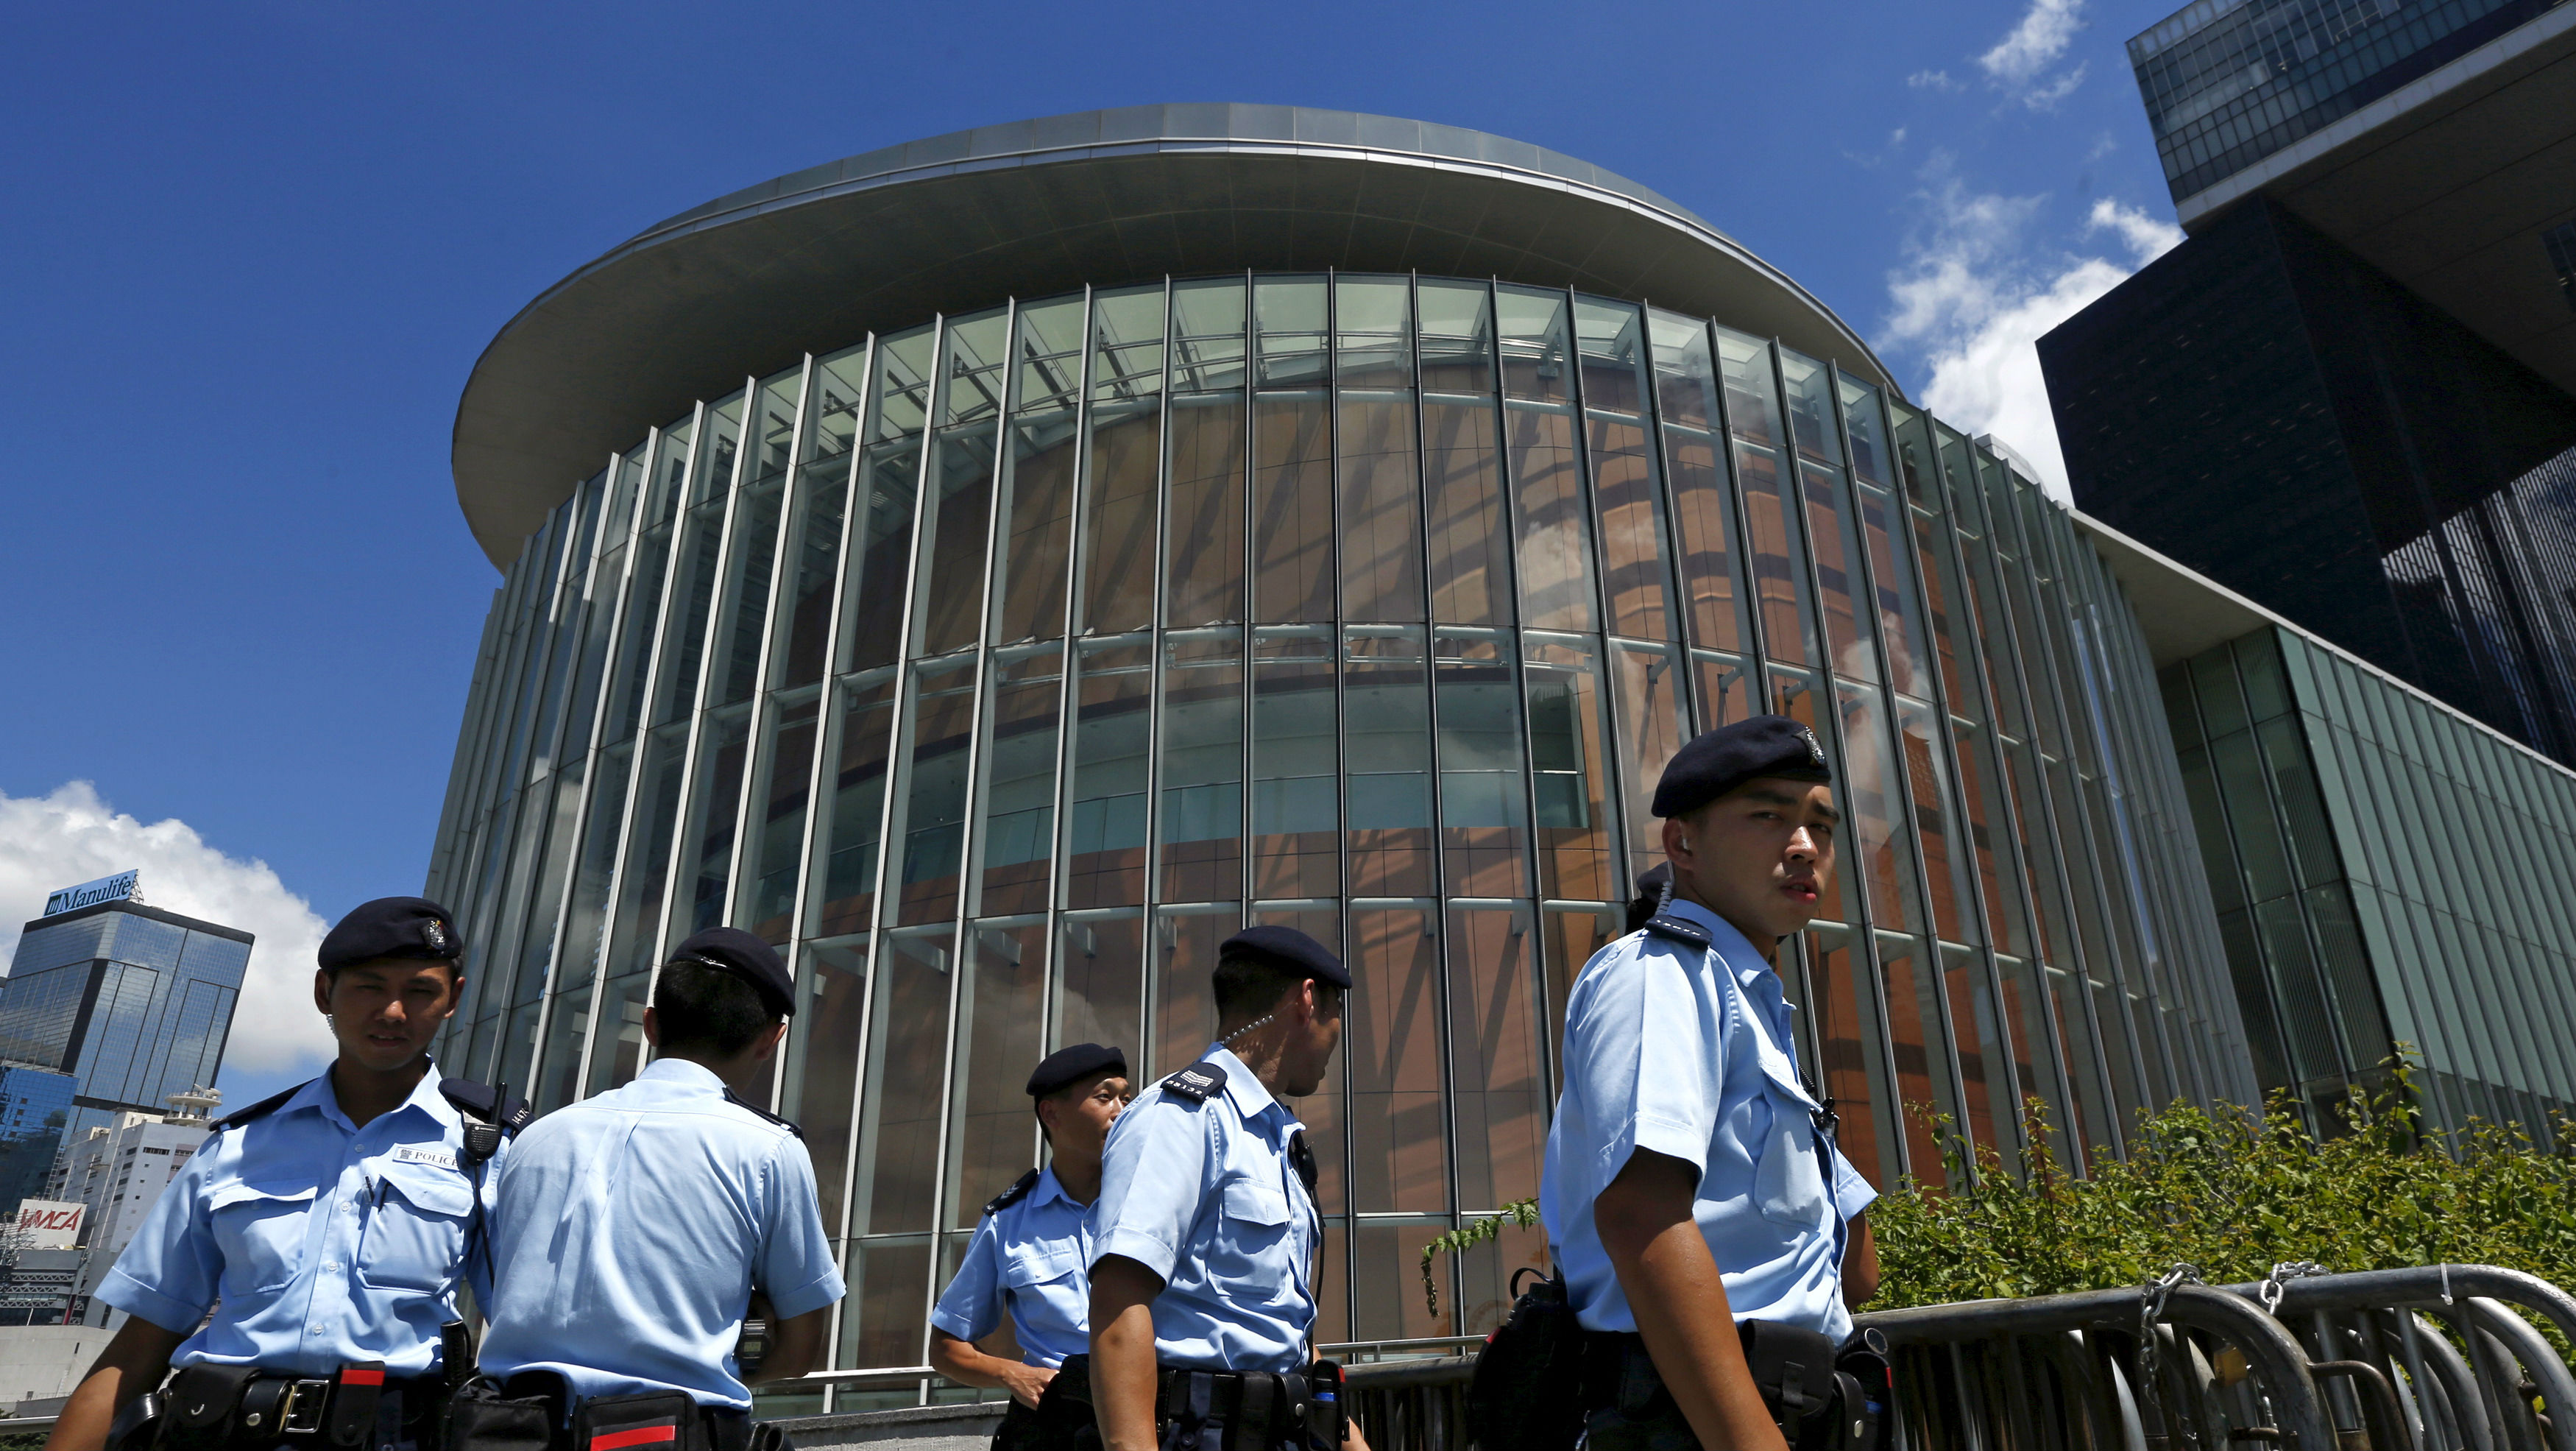 Policemen patrol outside the Legislative Council building in Hong Kong, China June 15, 2015. Hong Kong is gearing up for a vote this week on a contentious electoral reform package backed by Beijing, with a weekend poll showing public support has shifted against the proposal amid renewed street marches by pro-democracy protesters. REUTERS/Bobby Yip